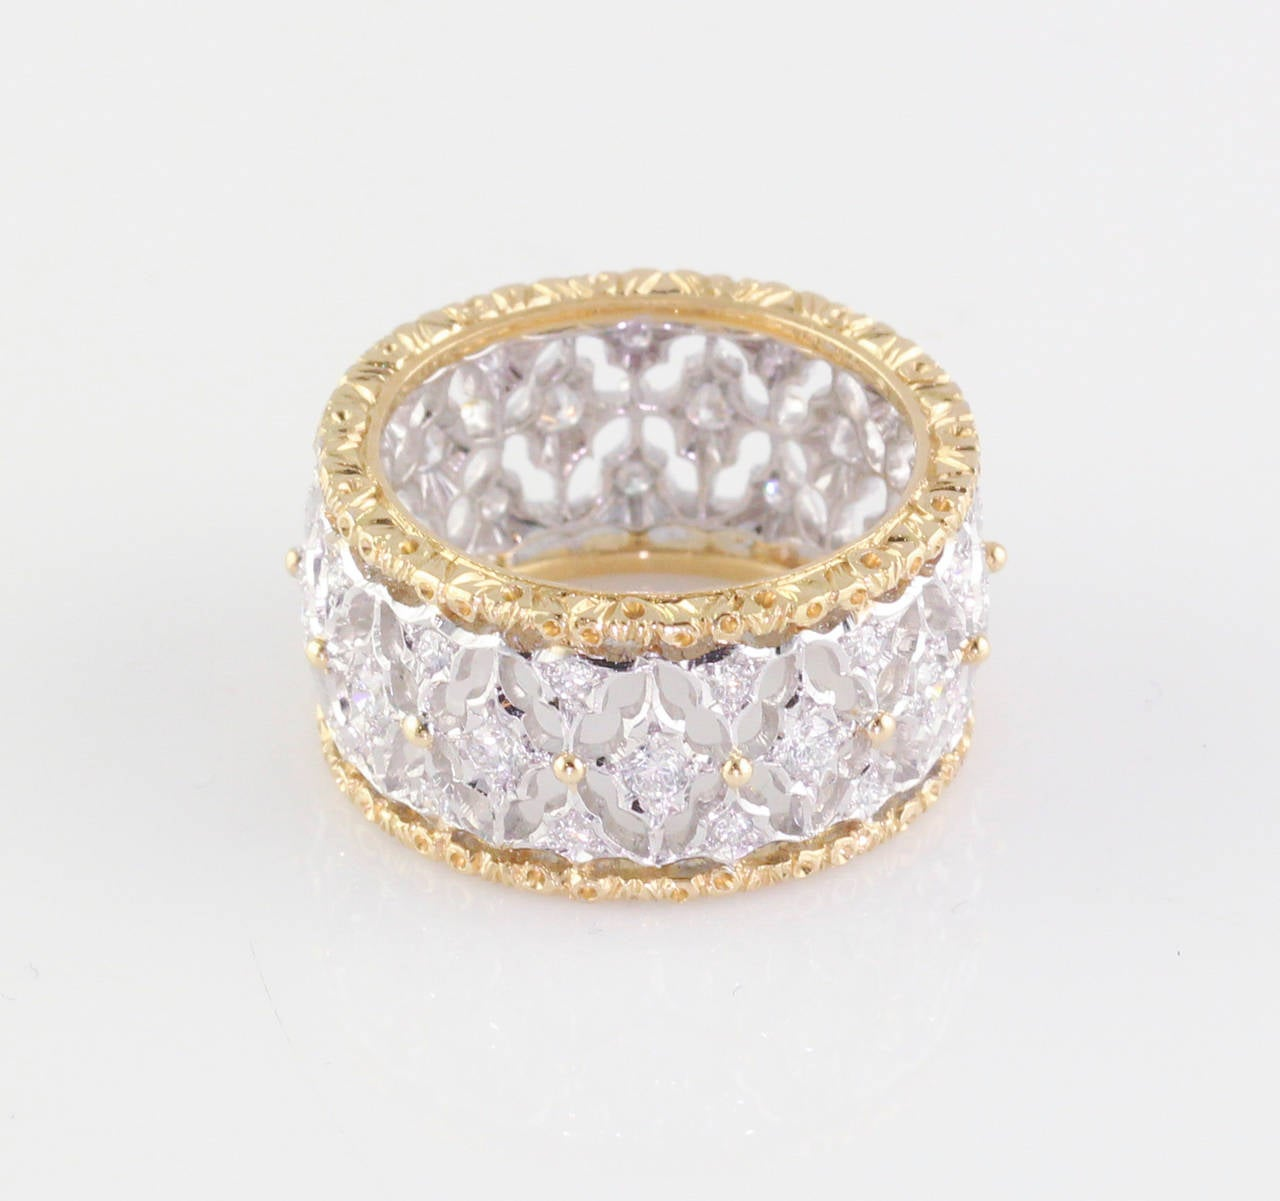 Intricate and elegant diamond band in  18K white and yellow gold, by Mario Buccellati. It features high grade round brilliant cut diamonds, approxl .75cts total weight. Size 6.25.  Hallmarks: M. Buccellati, Italy, 750, Italiant standard mark